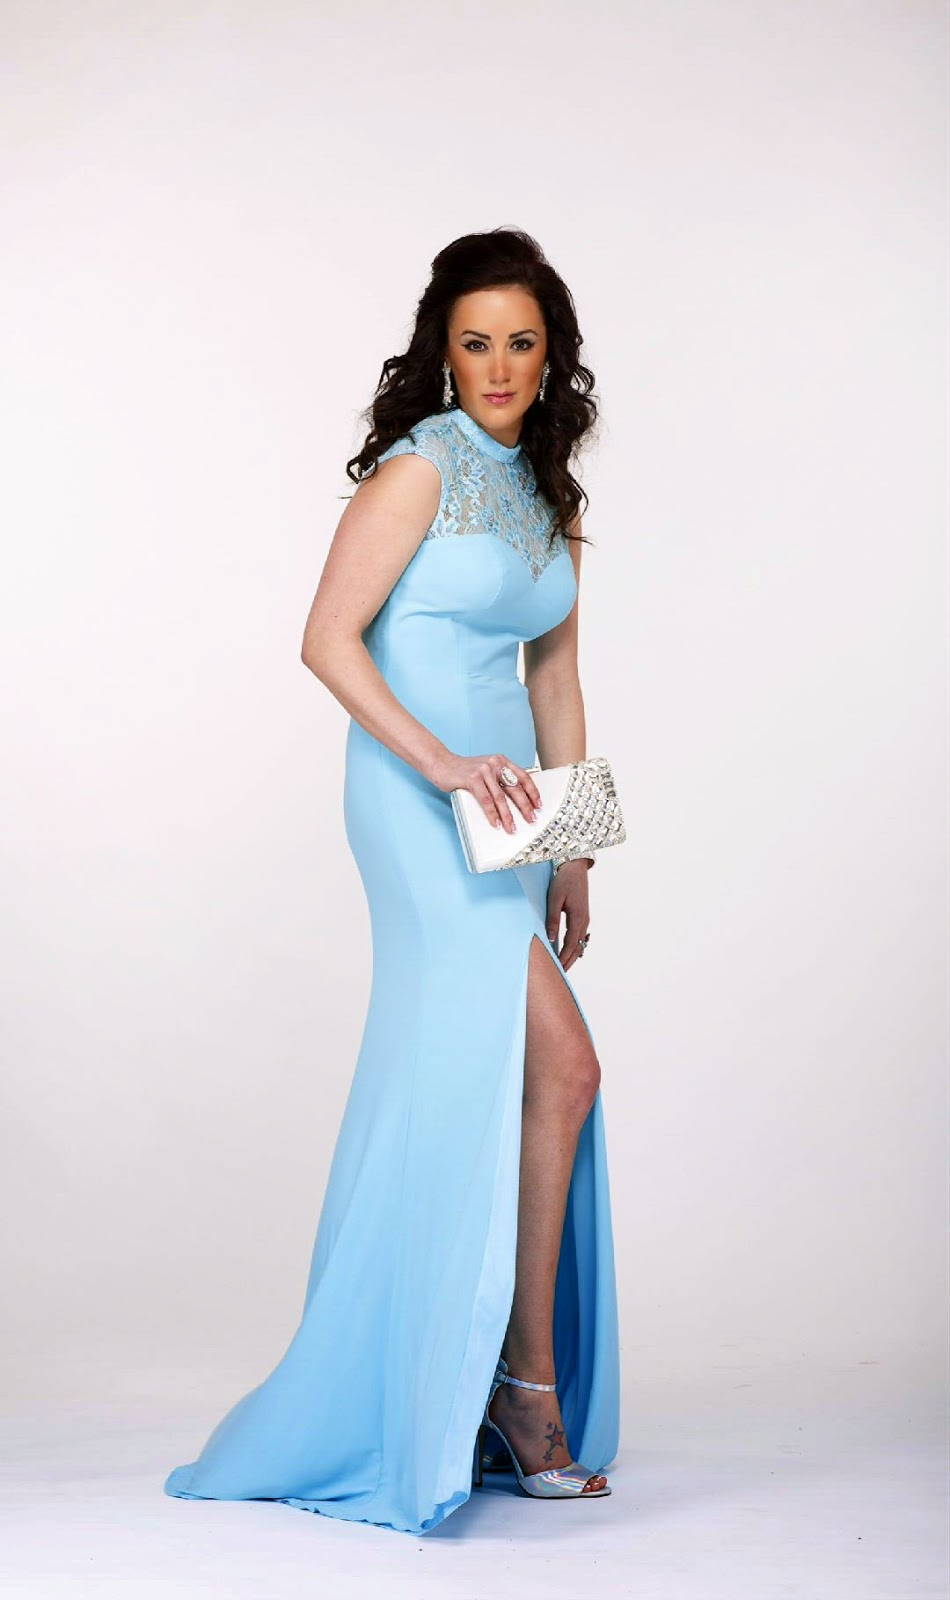 Plus Size Wedding Dresses Toronto : Plus size mother of the bride dresses in toronto ontario